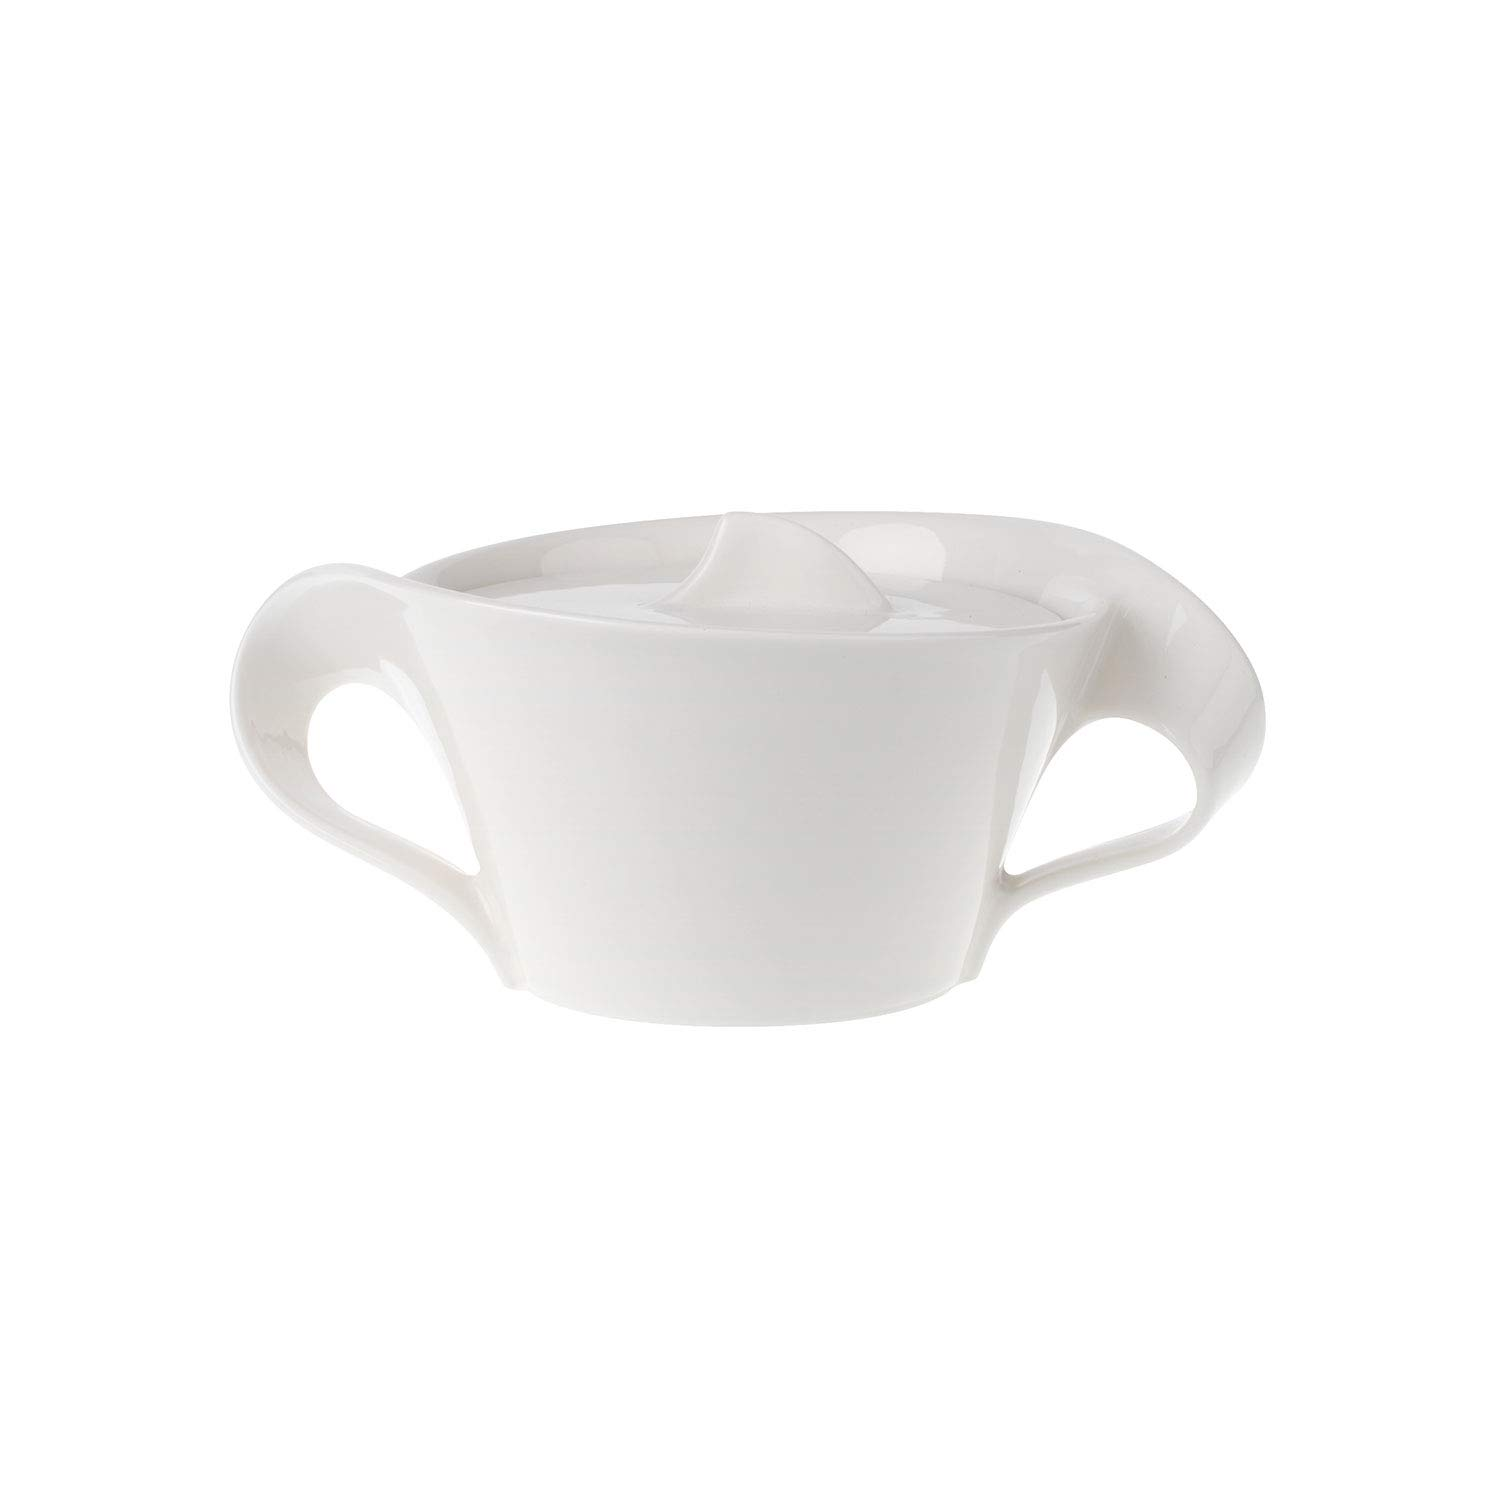 Villeroy & Boch New Wave 8-3/4-Ounce Covered Sugar